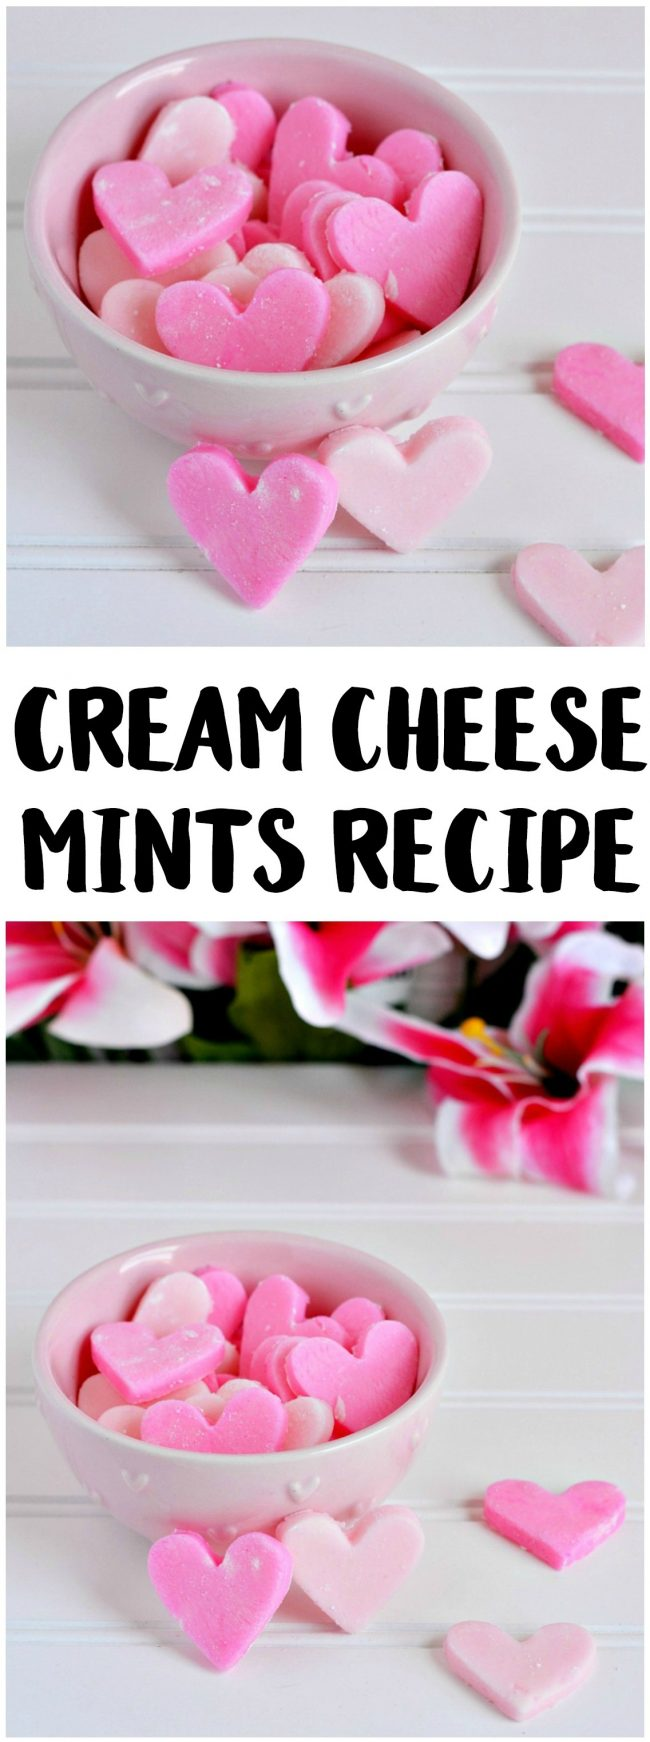 Need something fresh after dinner? These Cream Cheese Candy Heart Mints are delicious and easy to make. They're perfect for a quick dessert or refreshing bit any time.